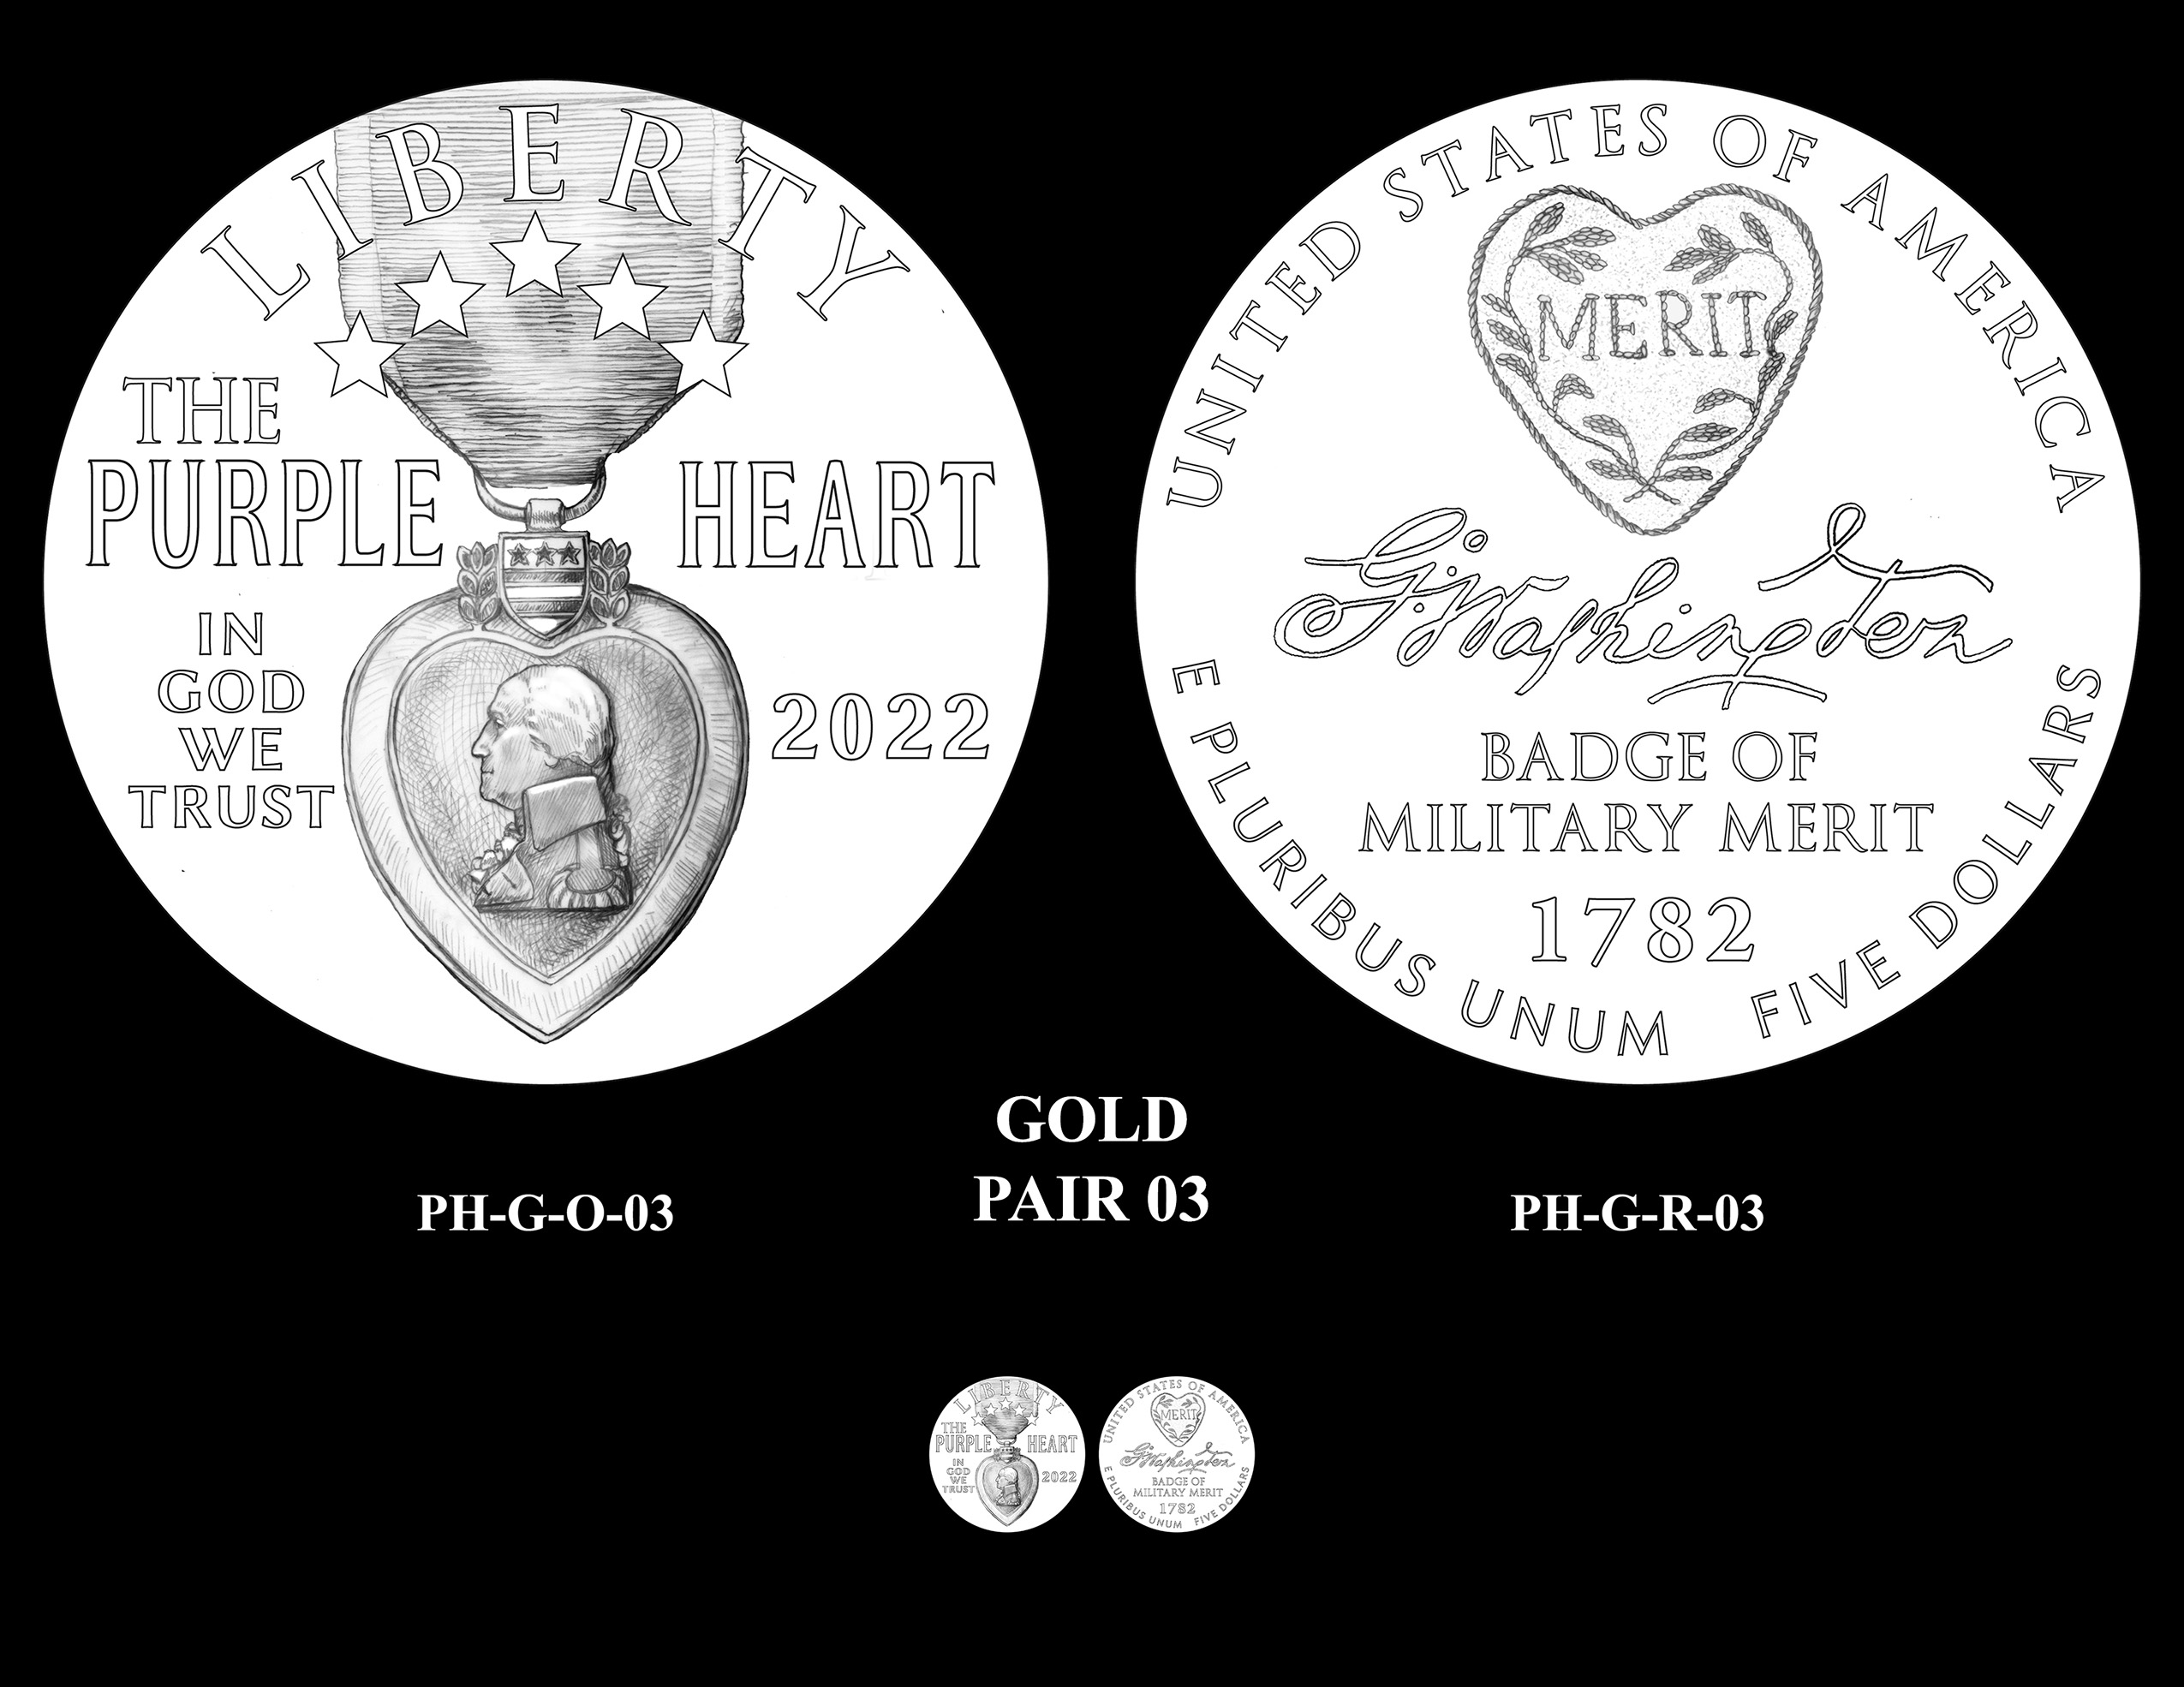 Gold Pair 03 -- National Purple Heart Hall of Honor Commemorative Coin Program